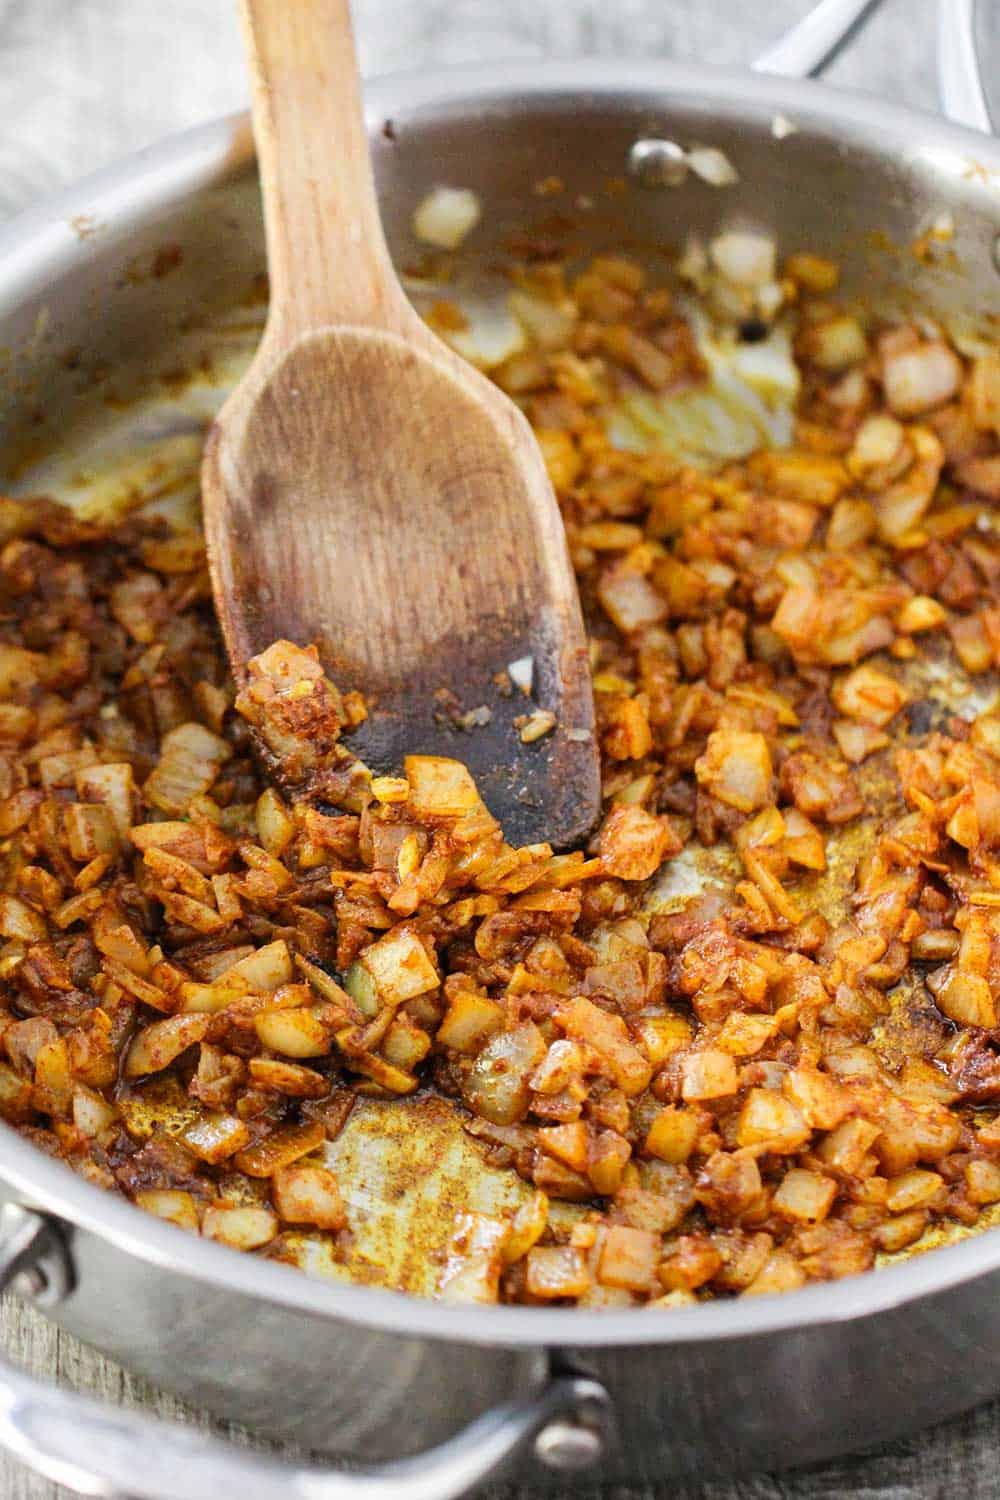 A skillet filled with sautéed onions and Moroccan spices with a wooden spoon in the middle.